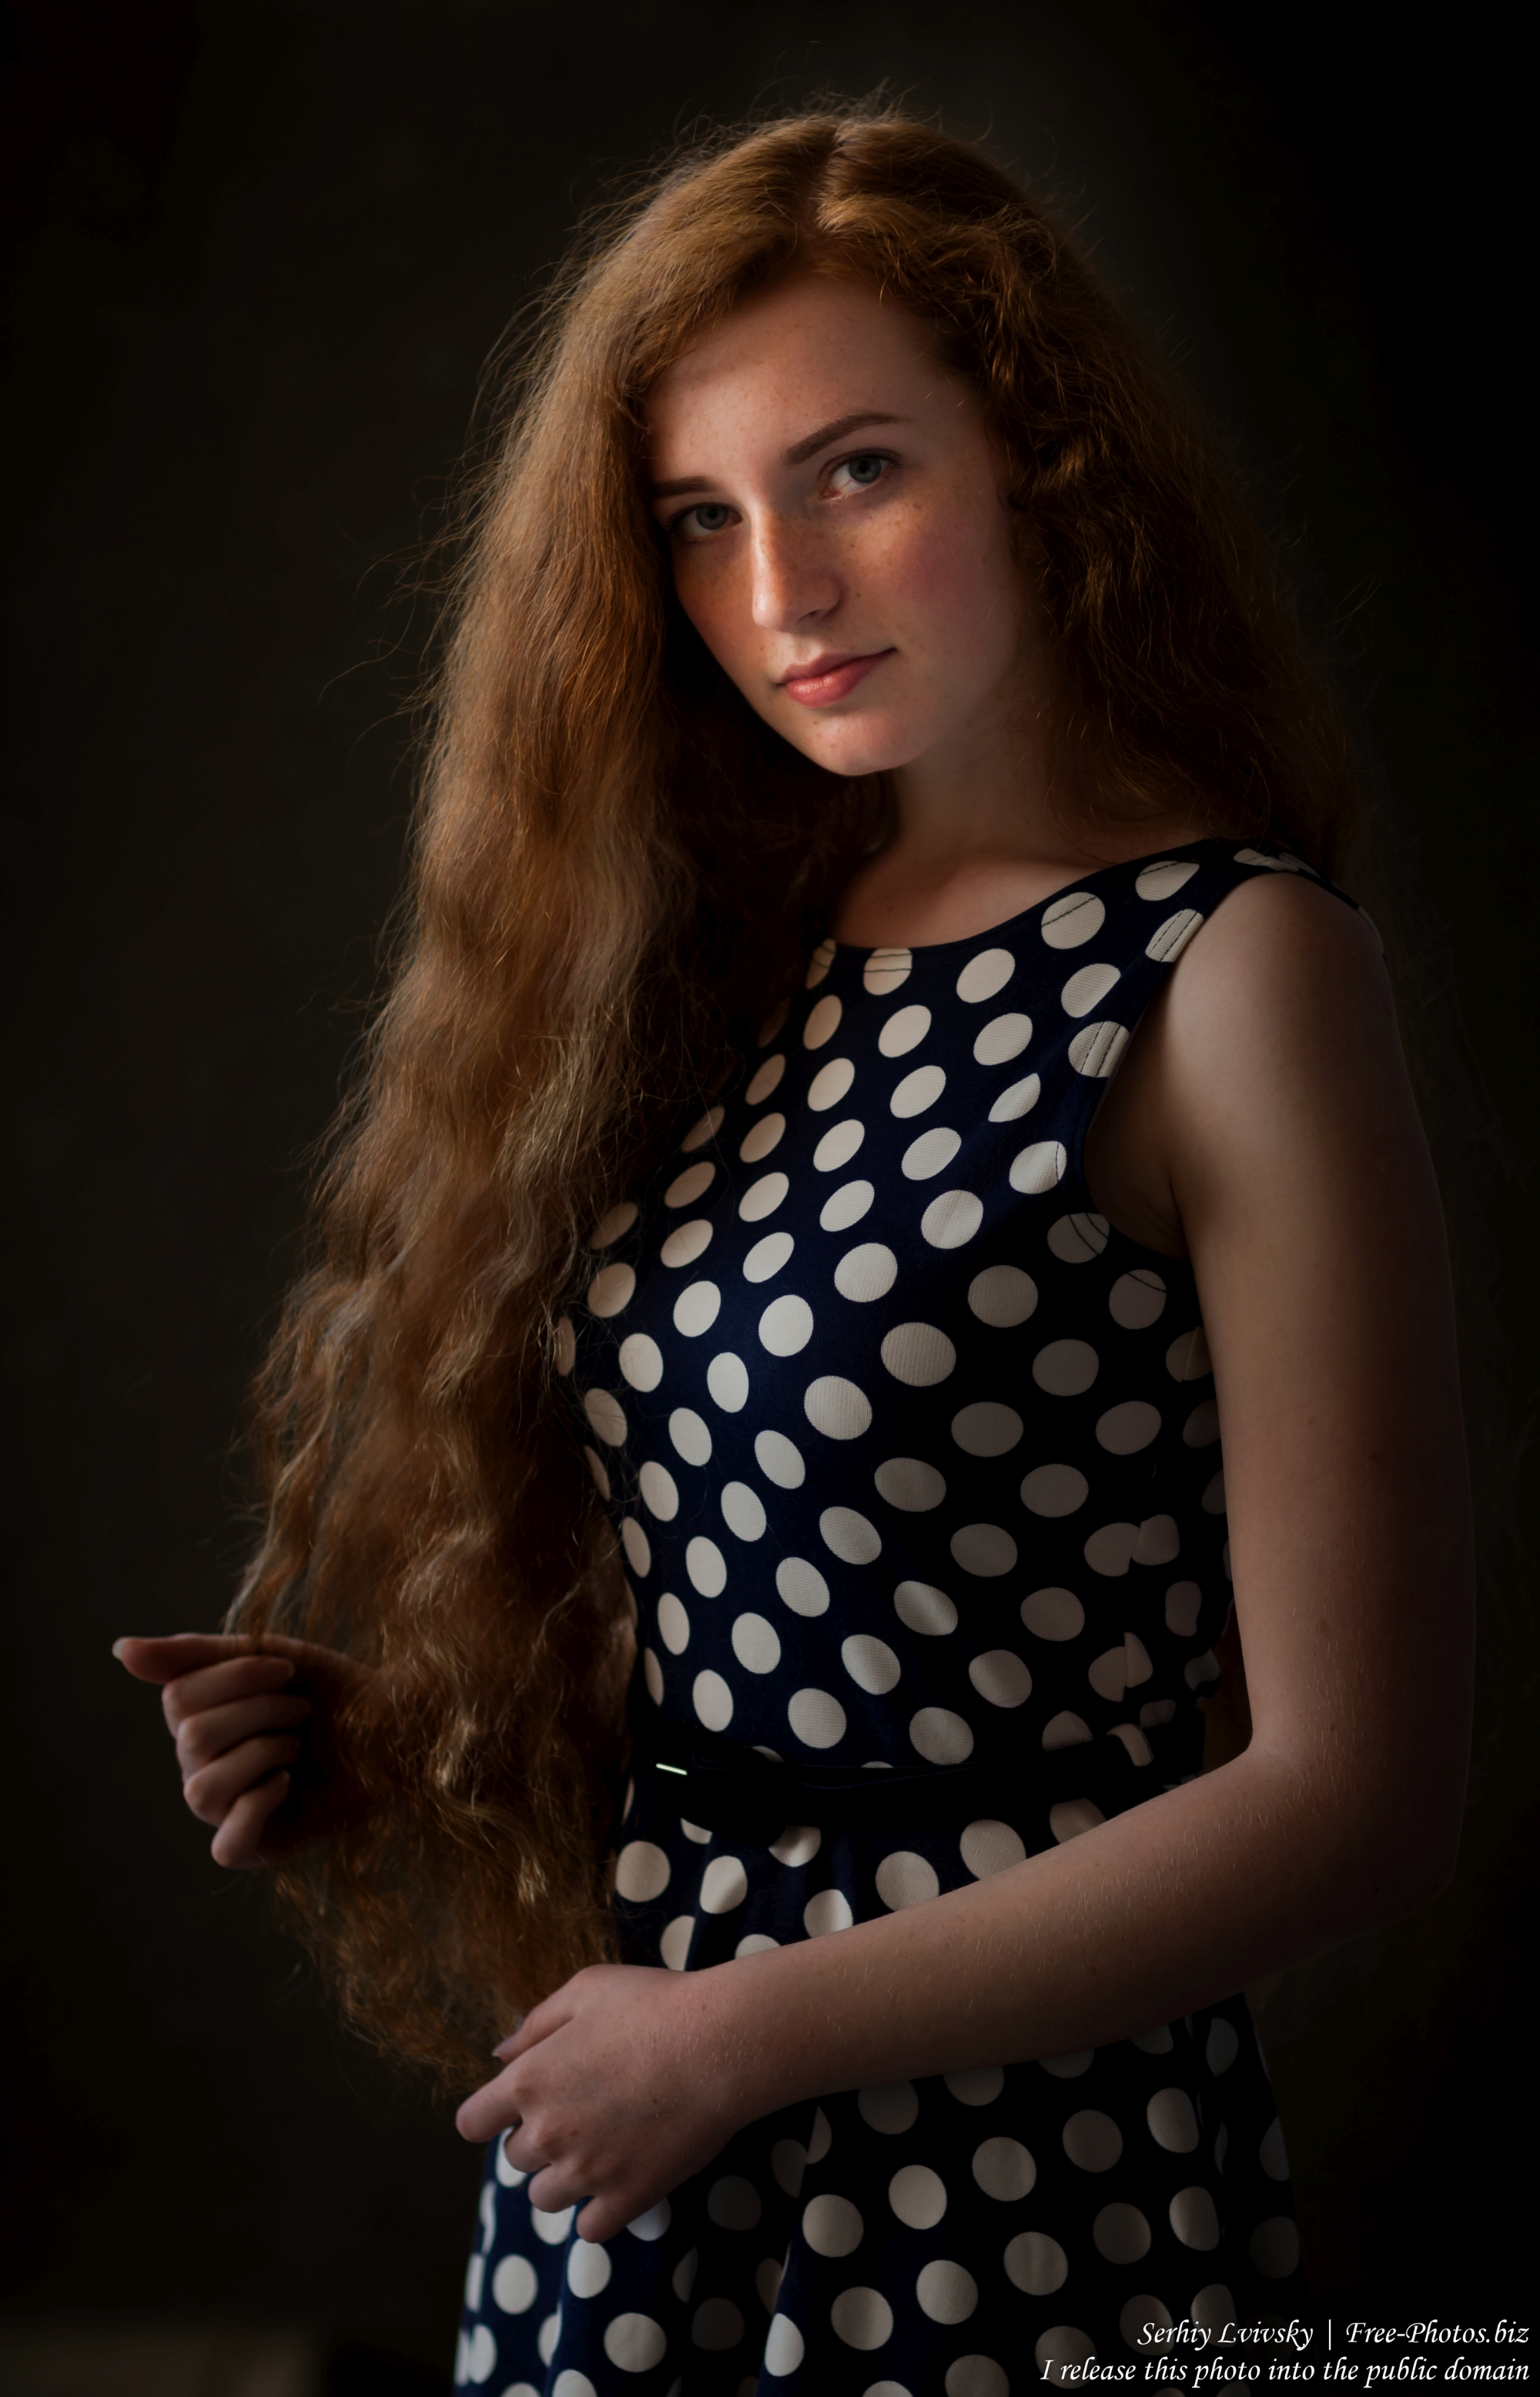 ania_a_19-year-old_natural_red-haired_girl_photographed_in_june_2017_by_serhiy_lvivsky_17